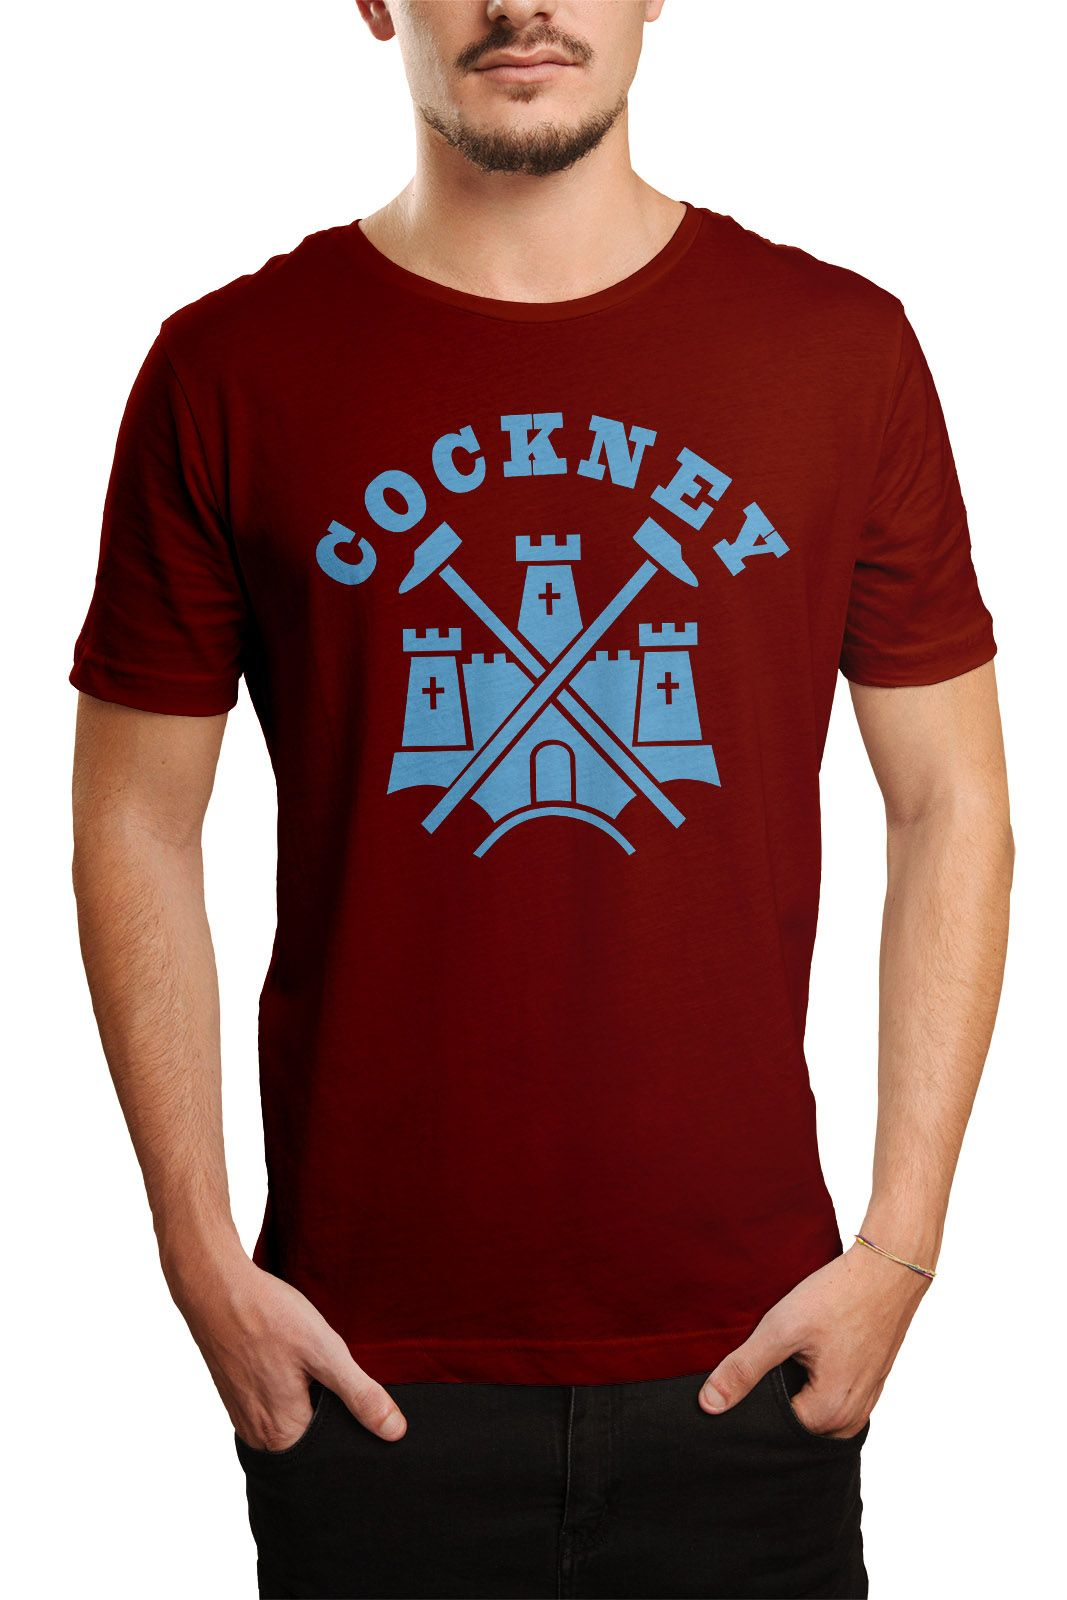 Camiseta  Cockney - Vinho  - HShop